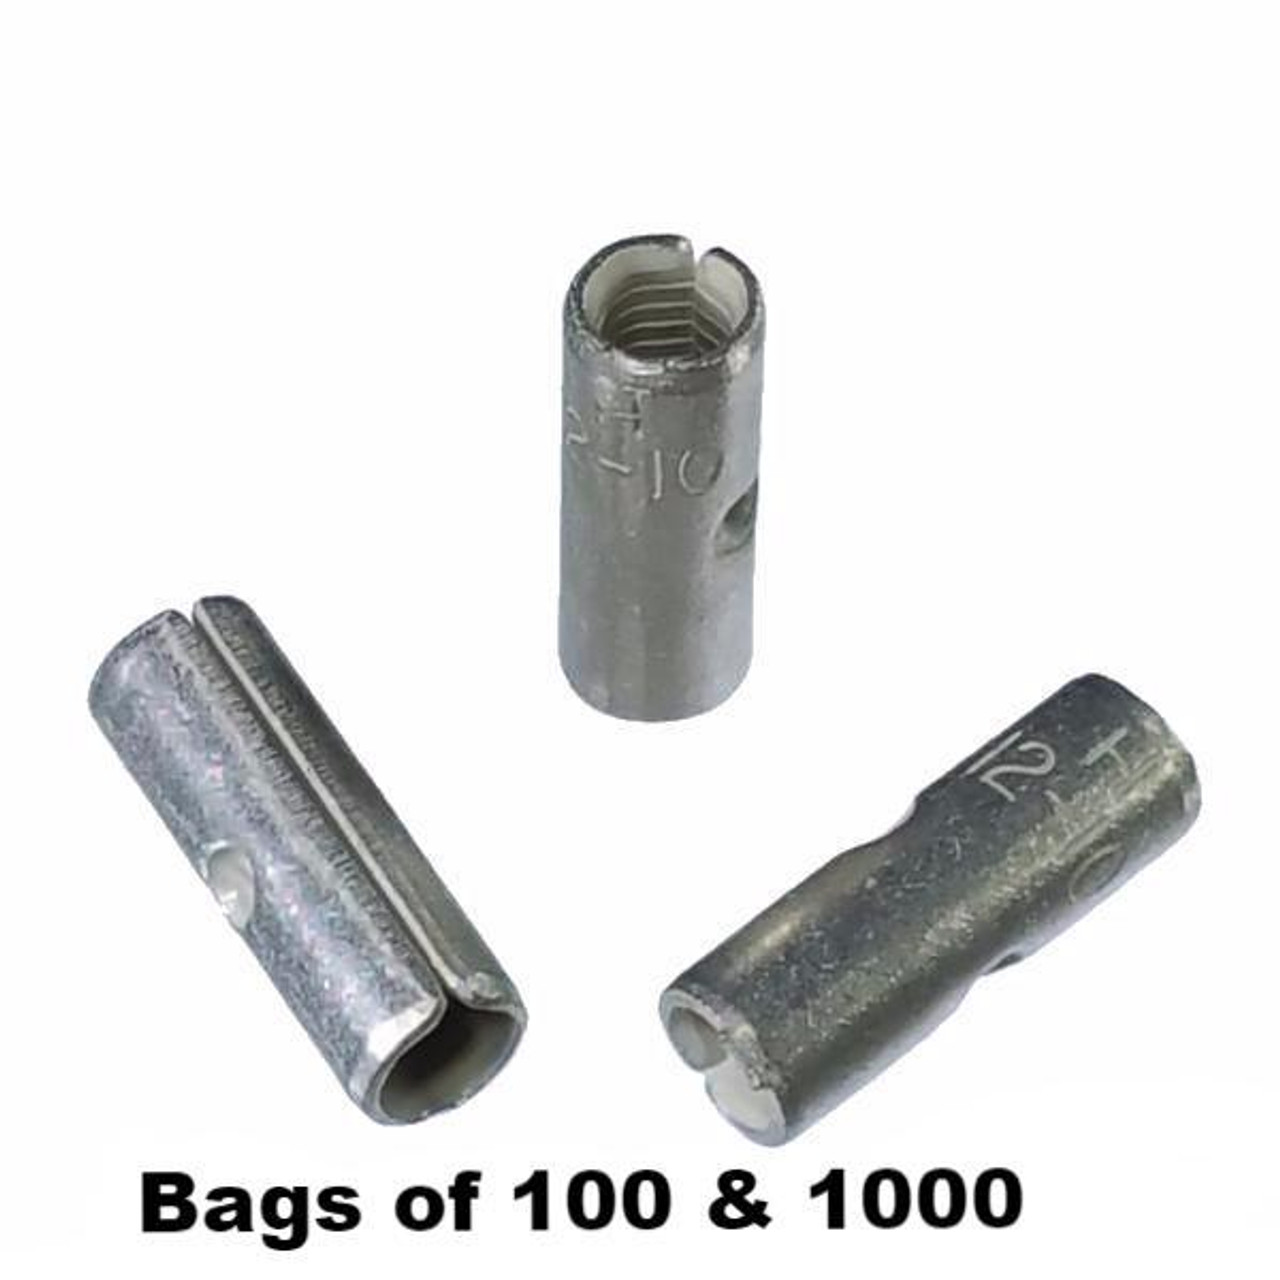 50 Non Insulated WIRE PIN Terminal Connectors Uninsulated #12-10 Wire Gauge AWG